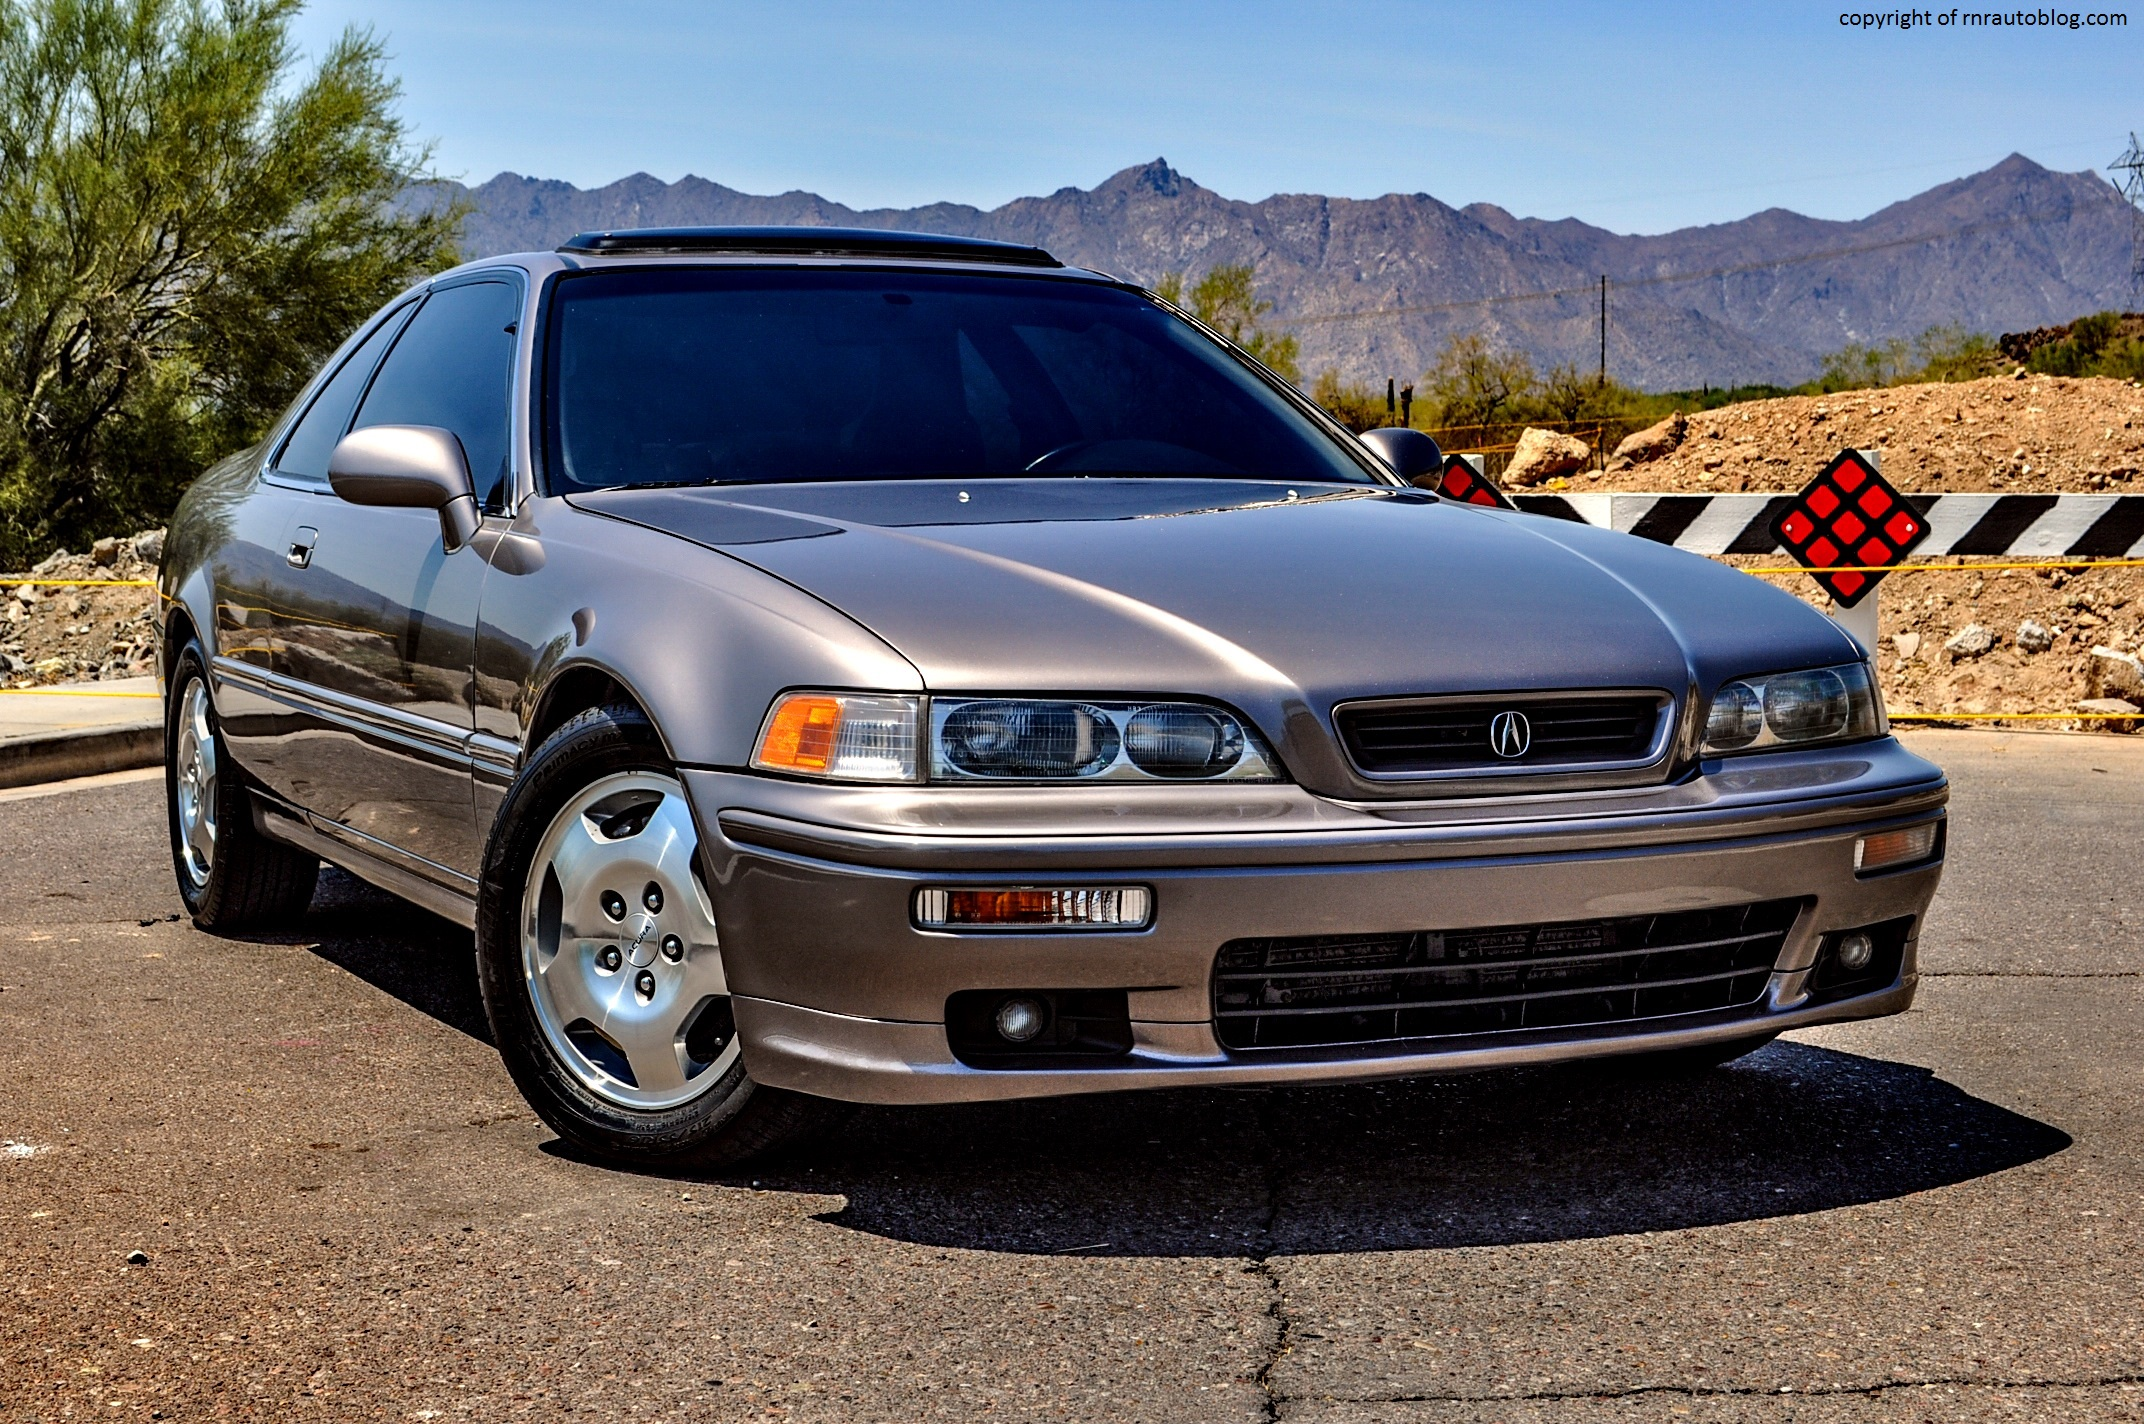 1994 Acura Legend LS Coupe and GS Sedan Review | RNR ...